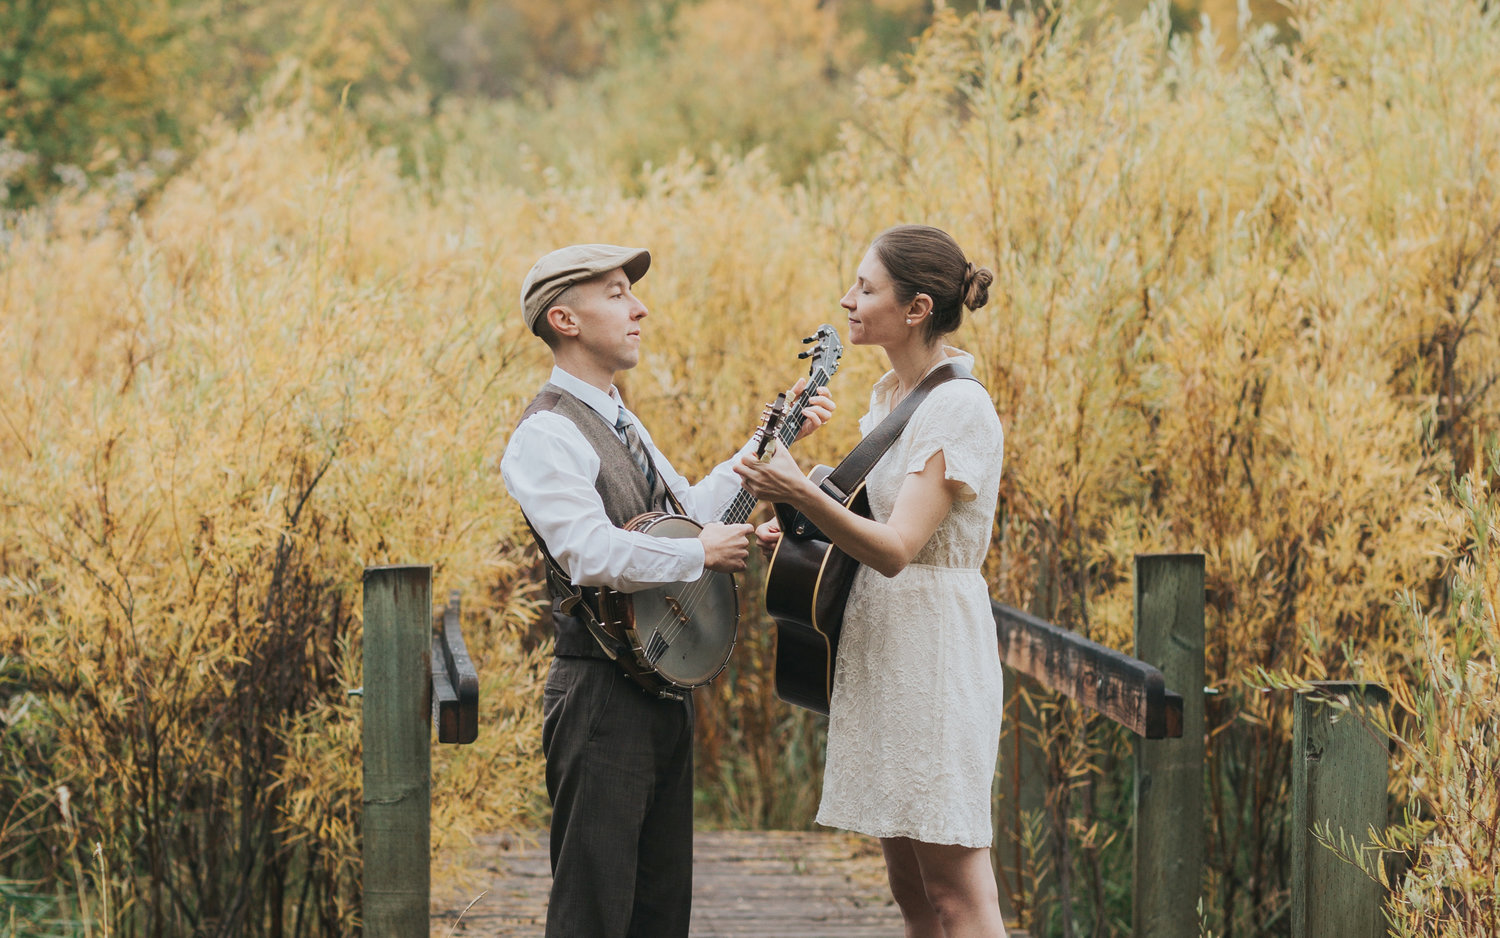 Ordinary Elephant — The folk duo will perform May 10 at Great Swamp Conservancy of Canastota.